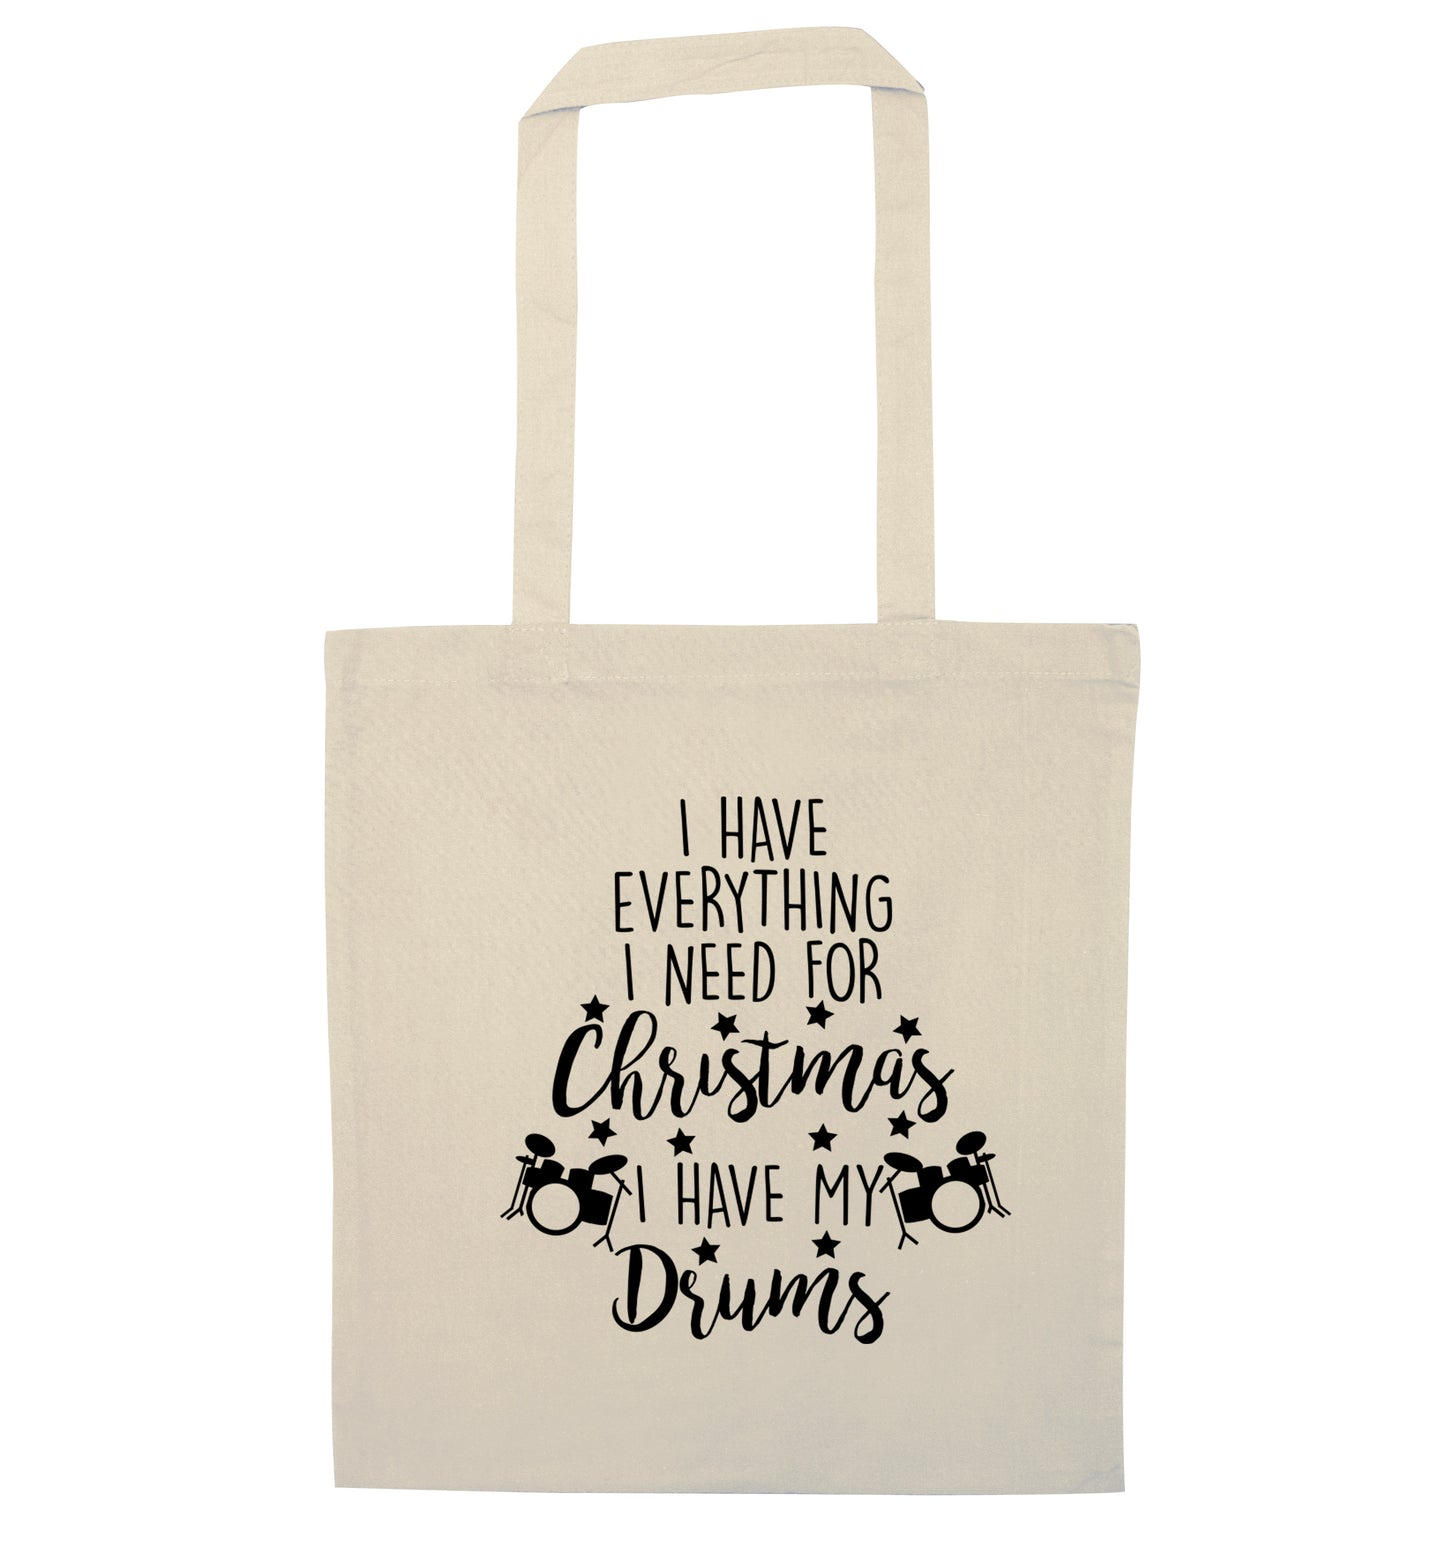 I have everything I need for Christmas I have my drums! natural tote bag